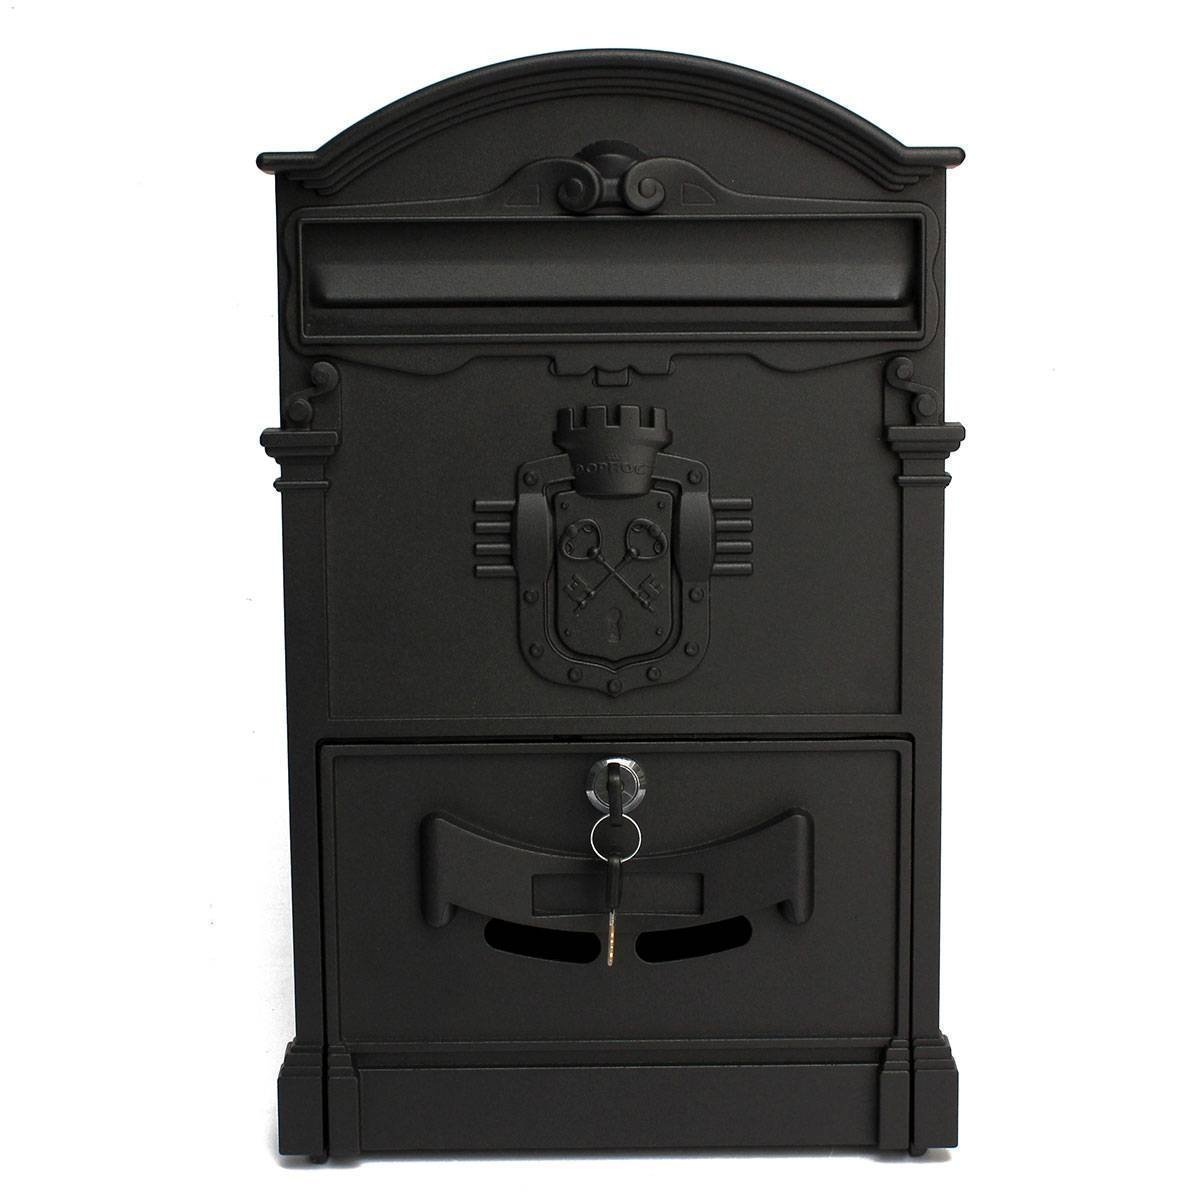 Doitb Mailbox European Style Outside Aluminum Wall Mount Post Box Secure Mailbox Letterbox Outdoor Retro Vintage Mailboxes (Black)